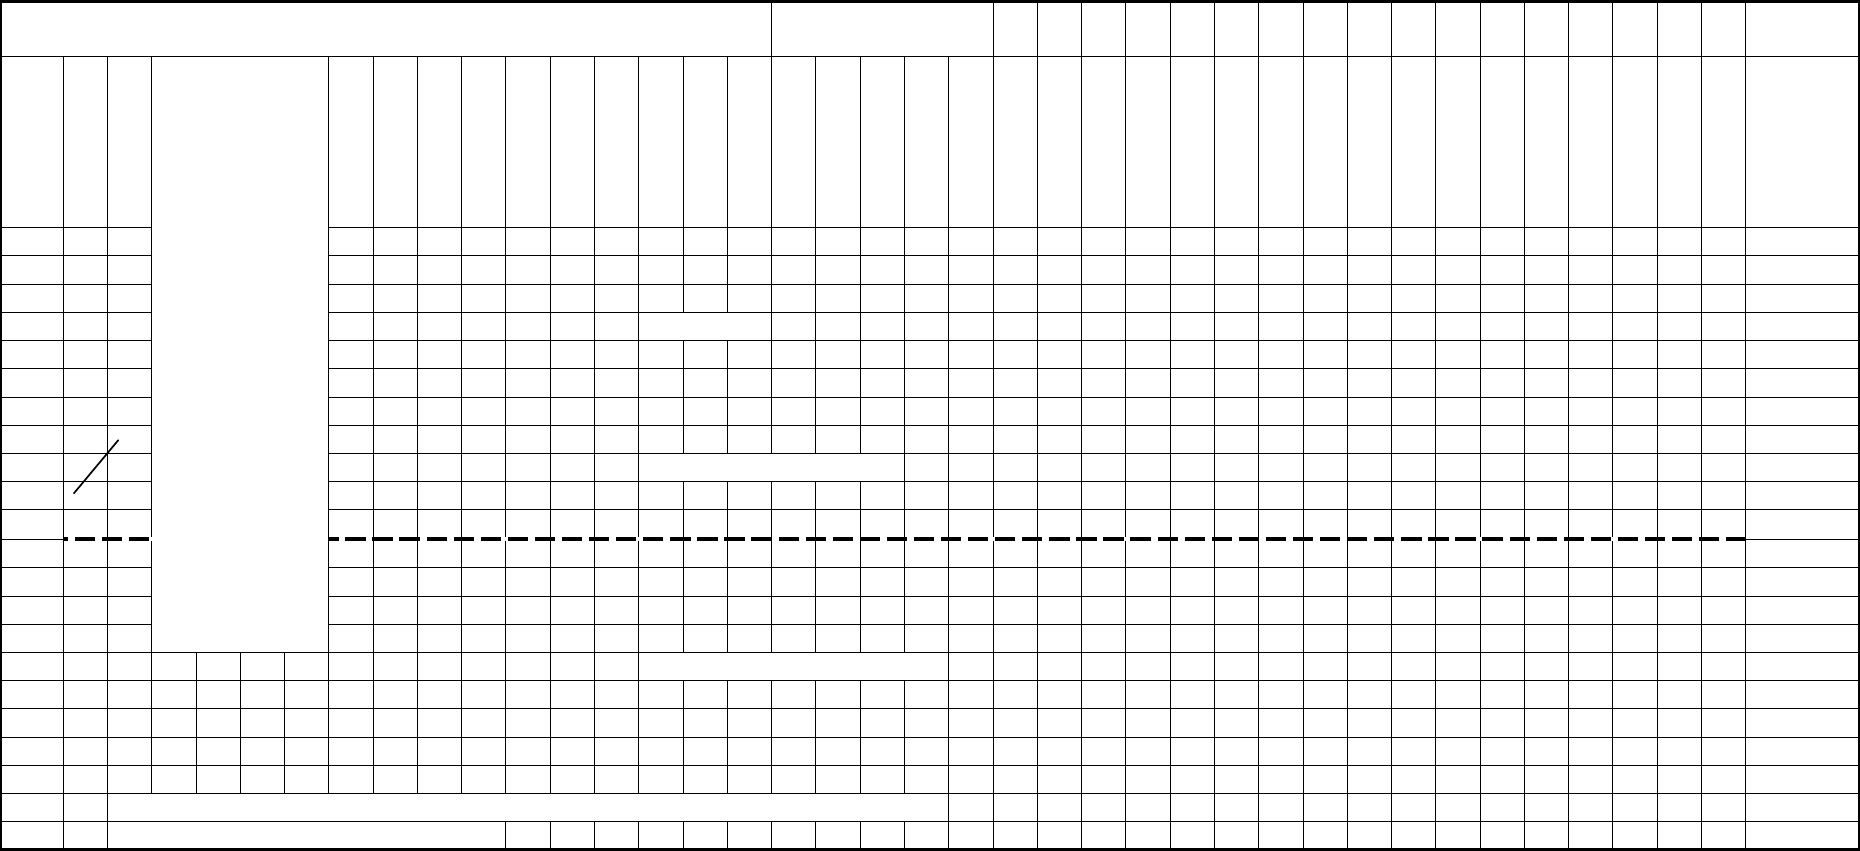 temperature recording chart free download